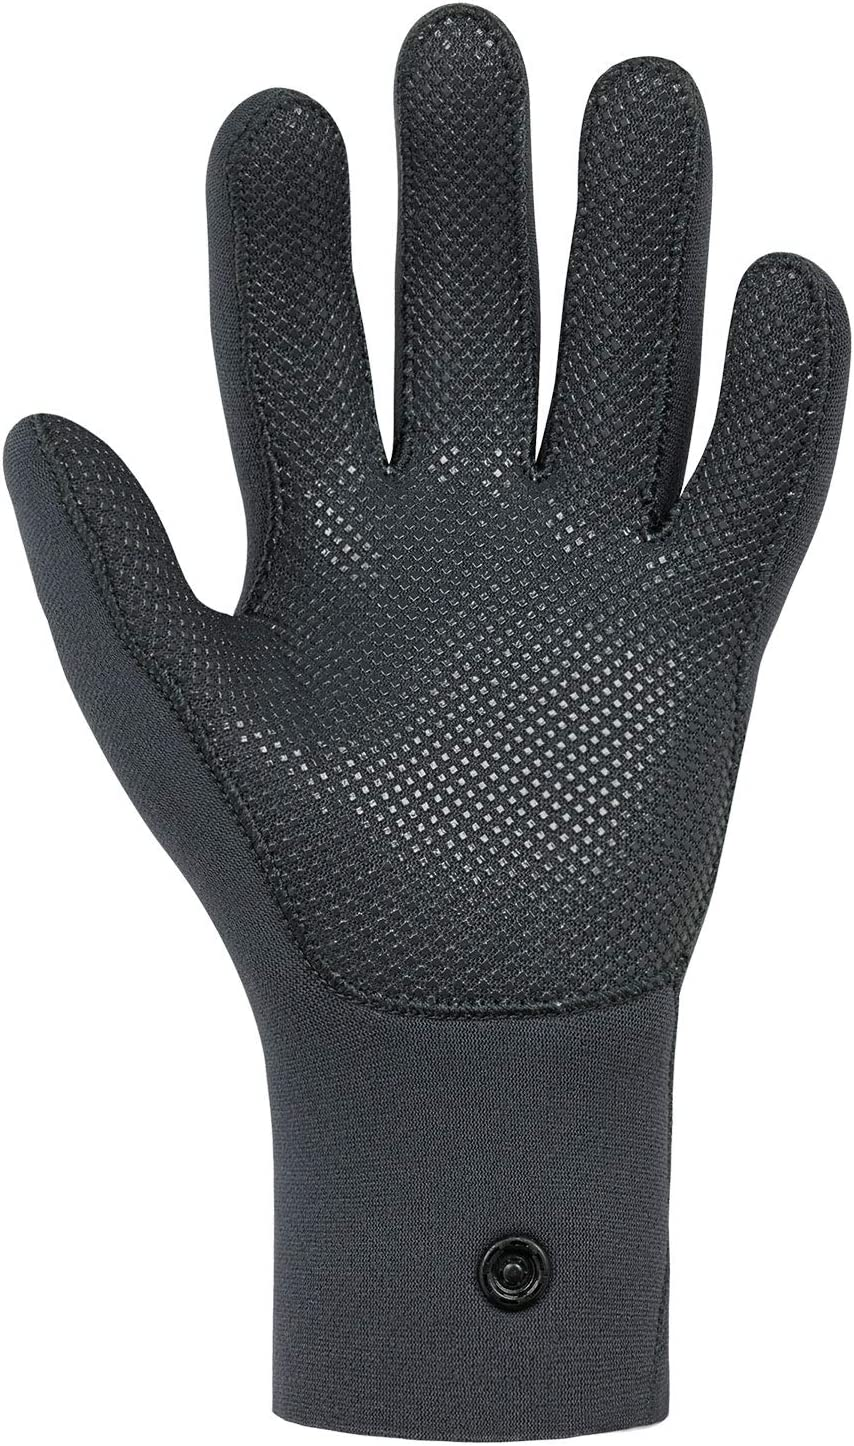 Grab High Ten Neoprene Wetsuit Gloves Jet Grey Glued and blind stitched construction Palm Kayak or Kayaking